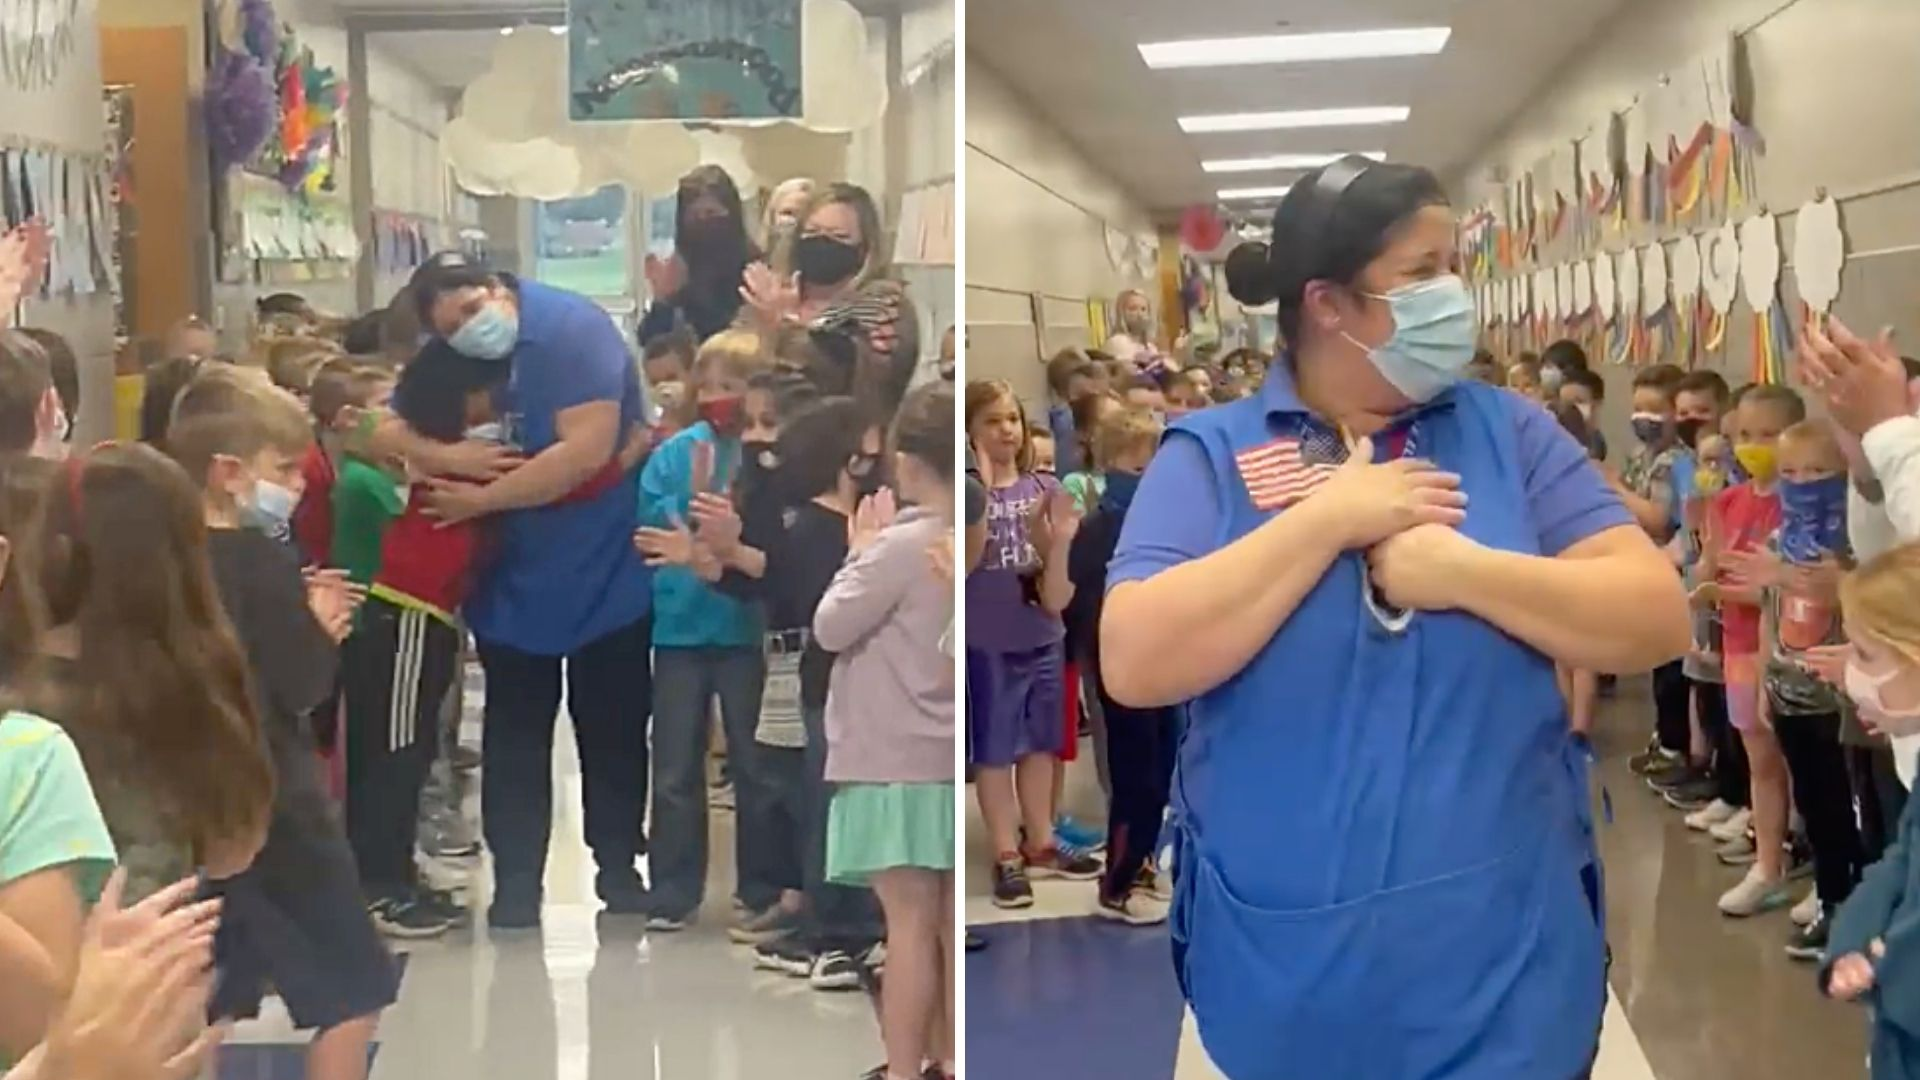 Students and teachers at Prairie Vale Elementary in Edmond, Oklahoma cheer for cafeteria manager Yanet Lopez after she passed her test to become a United States citizen. (Prairie Vale Elementary on Facebook via Storyful)